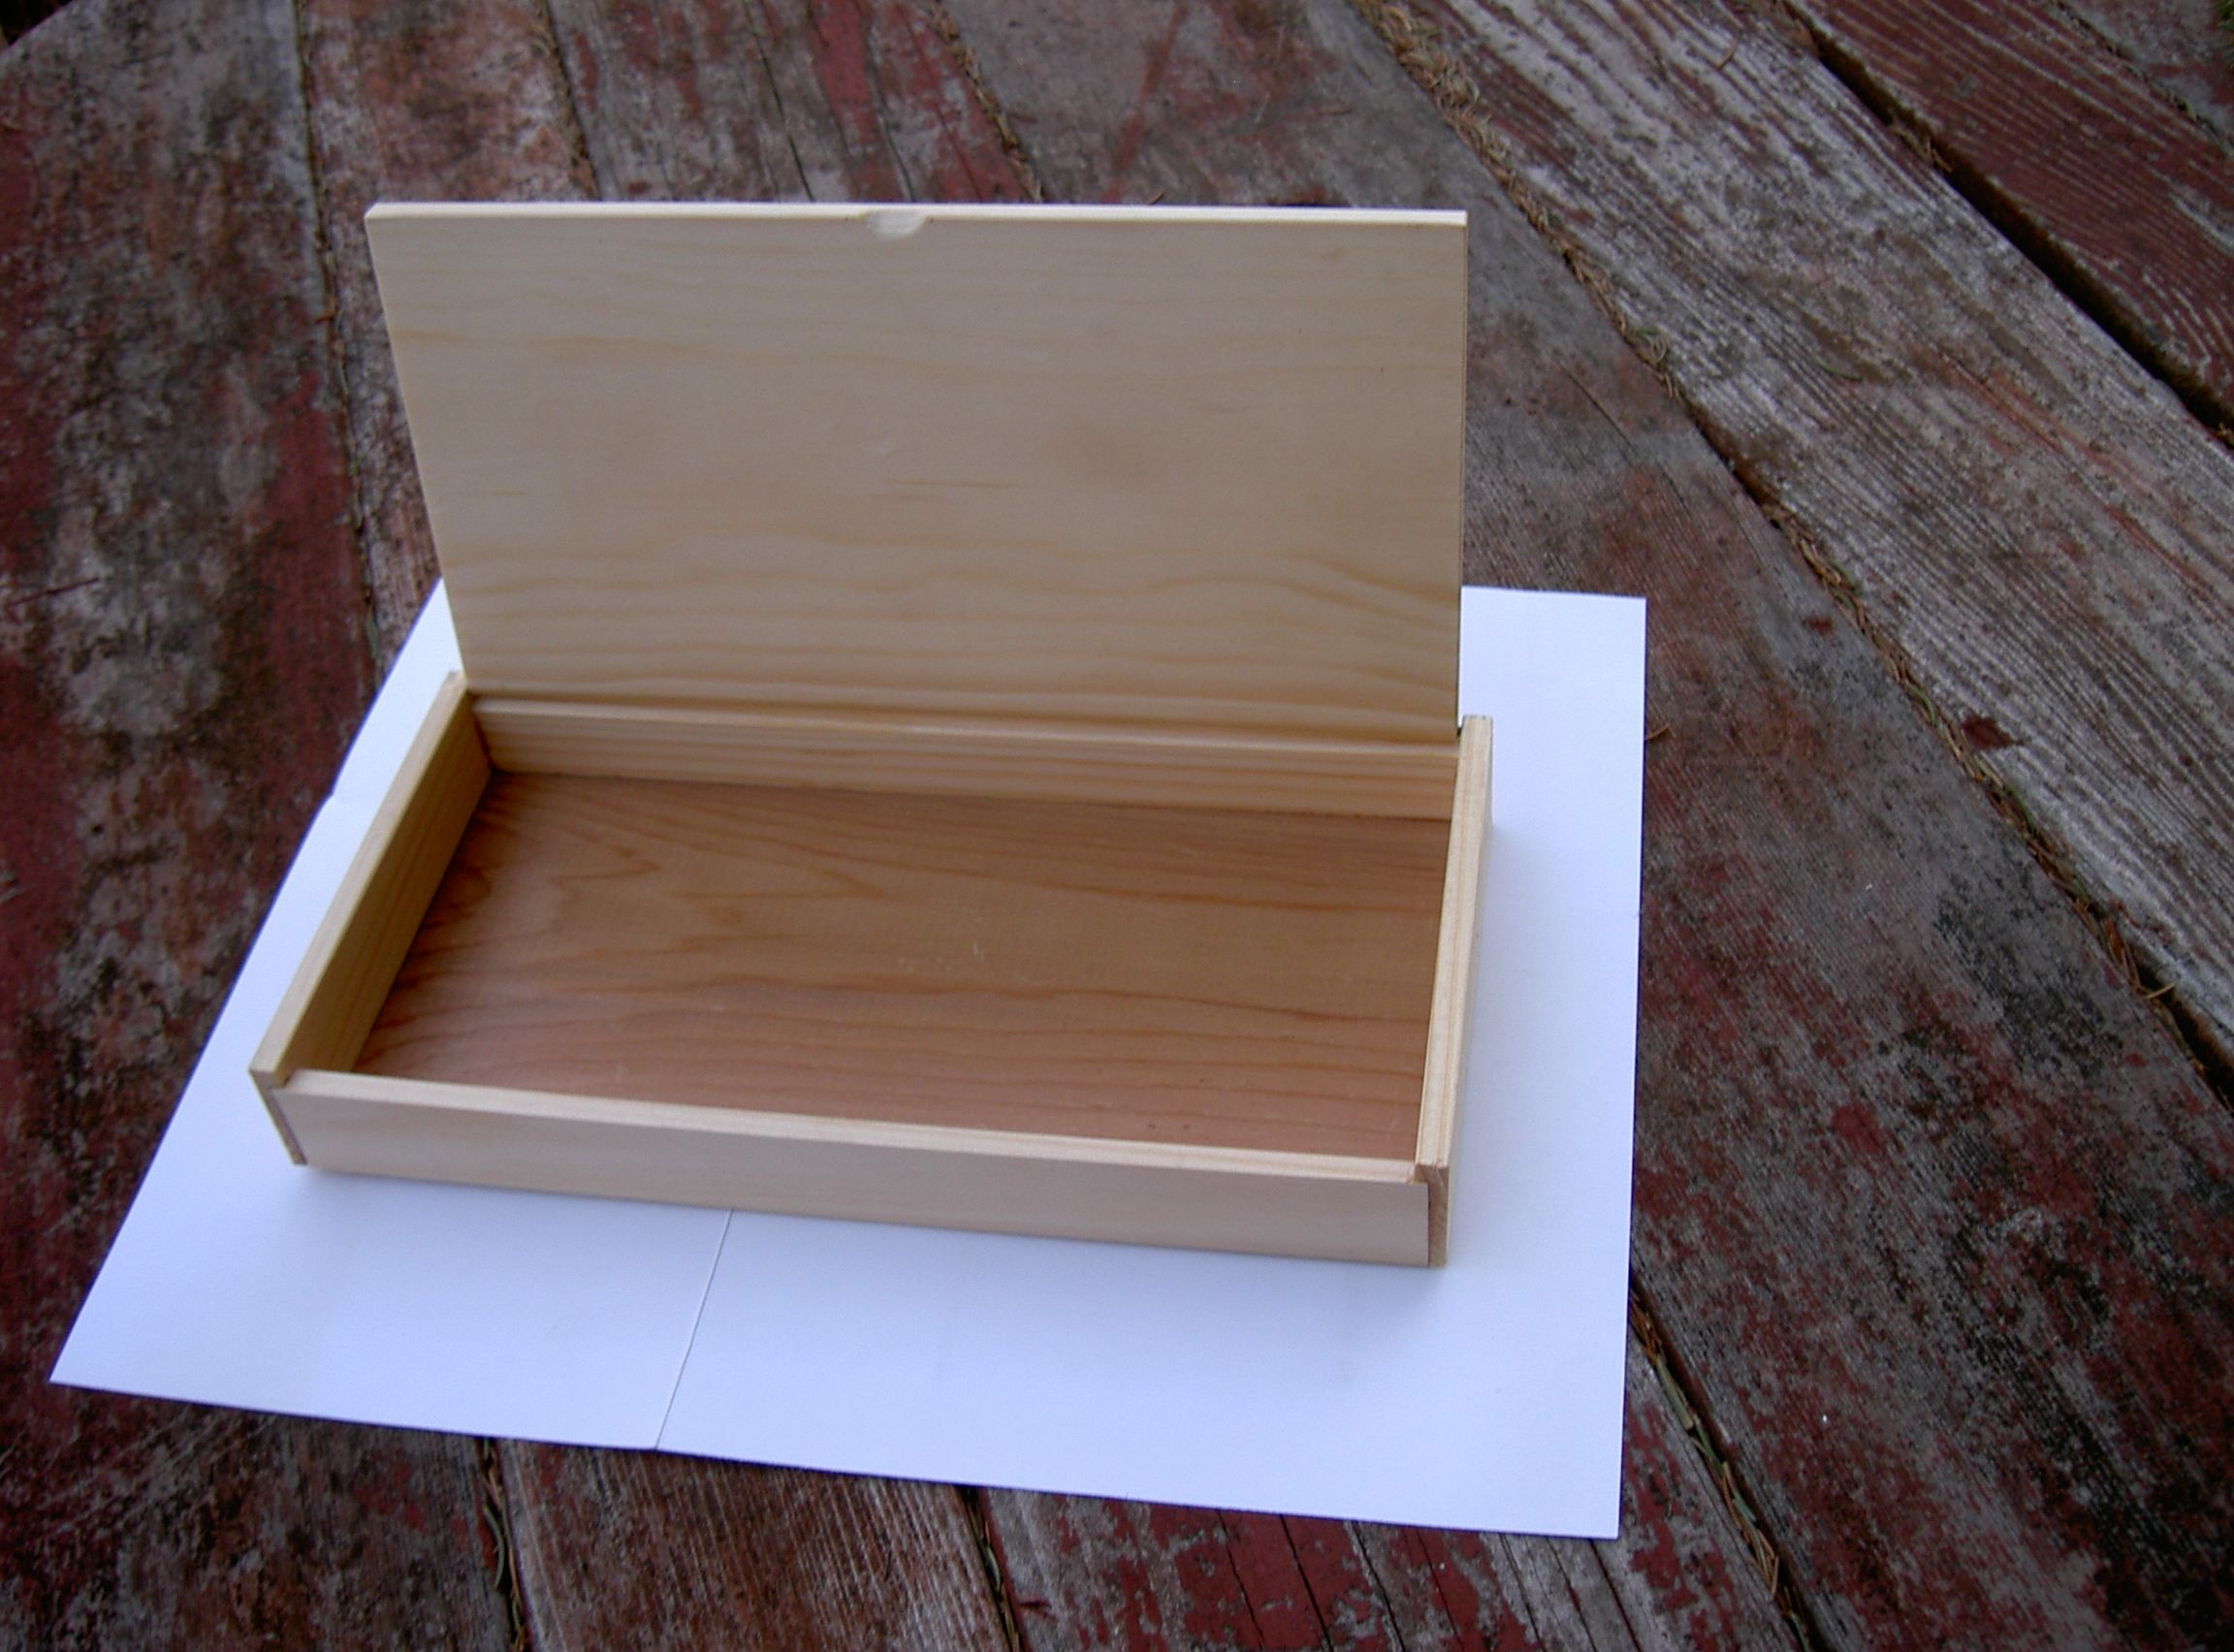 Wooden Box With Hinged Lid Wooden Hinges Wooden Boxes Wooden Box With Lid